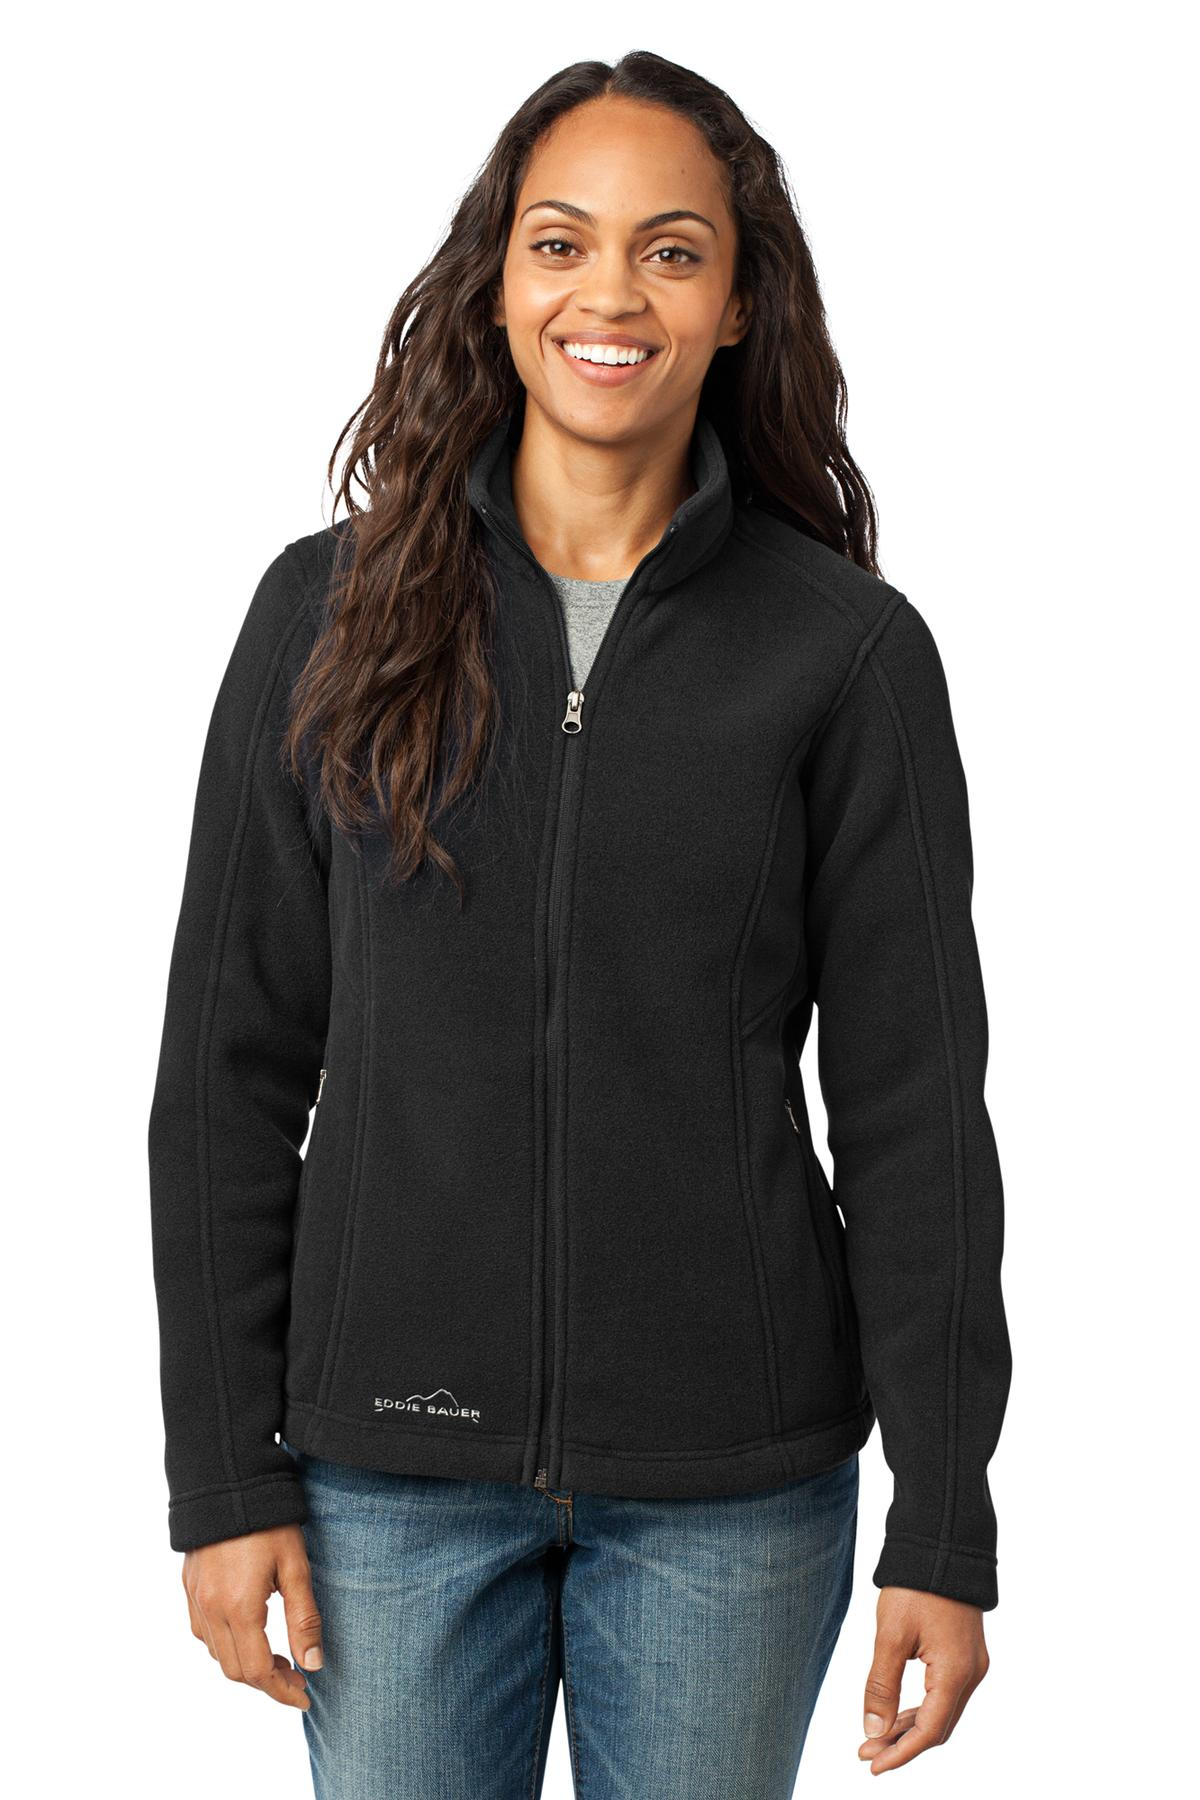 Eddie Bauer ®  - Ladies Full-Zip Fleece Jacket. EB201 - Black